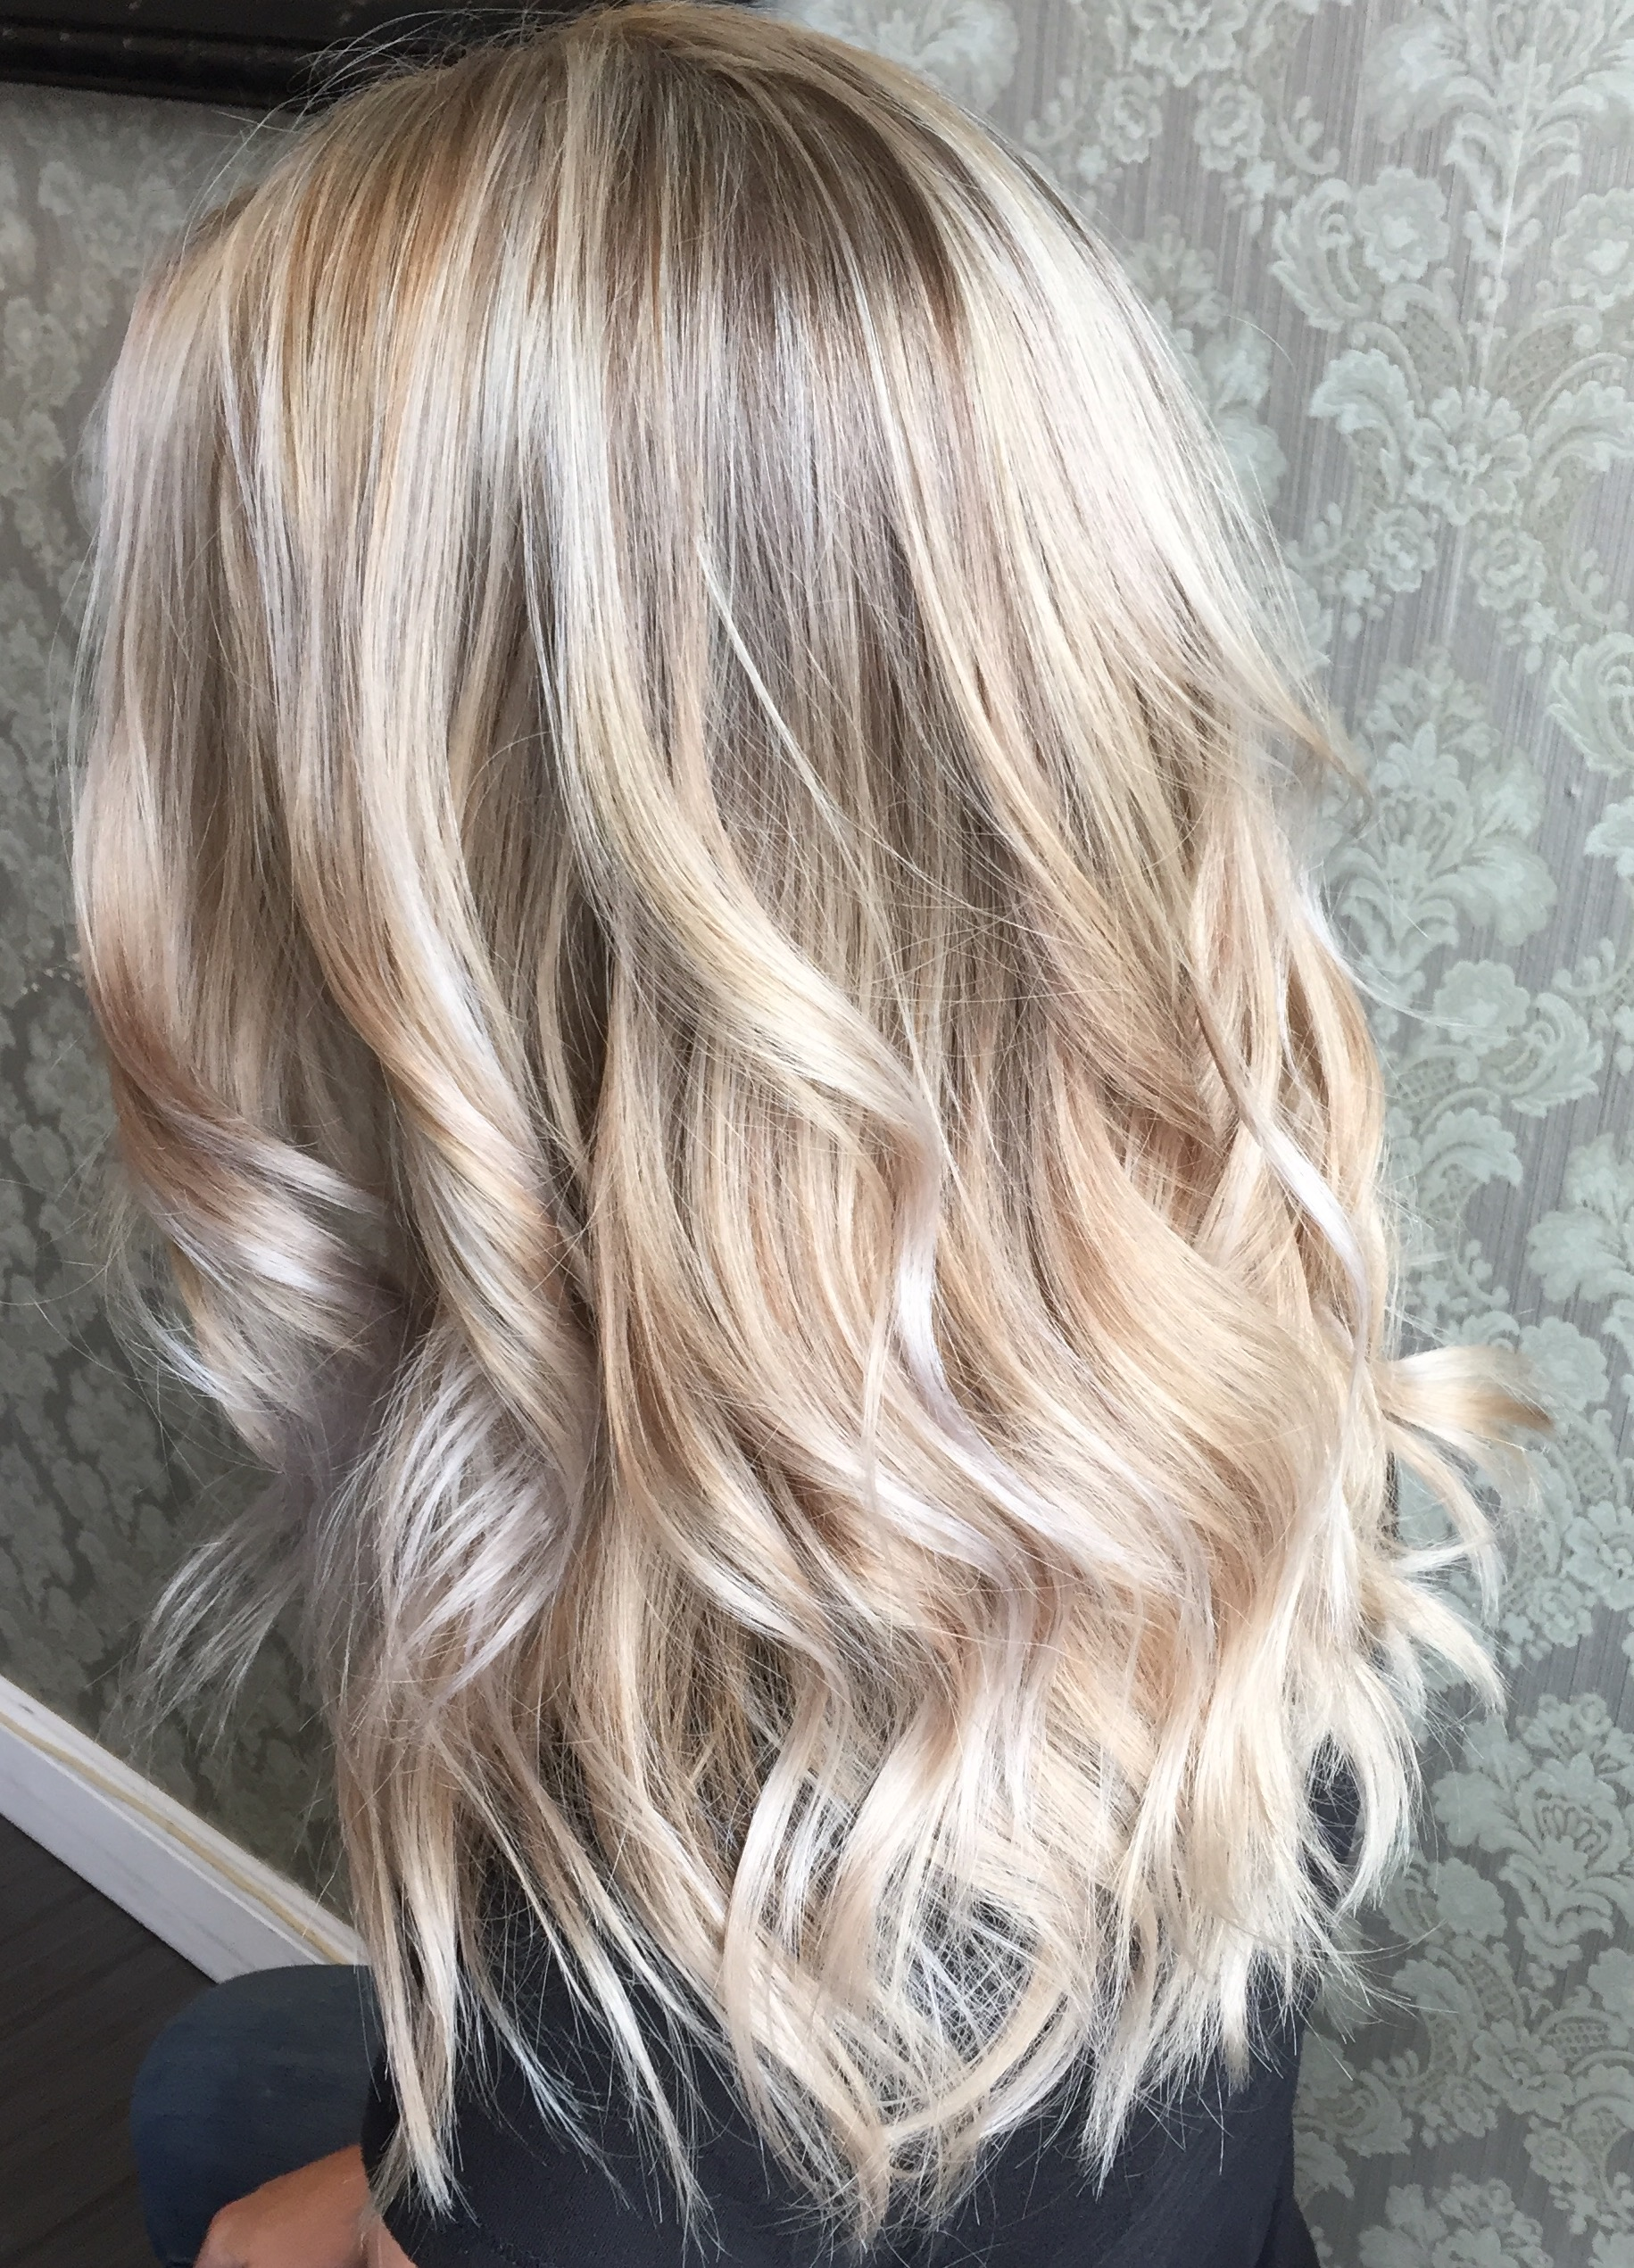 Amazing dimensional blondes by awardwinning salon owner Keris Weir kerisweir Another one hair salon makeover using my signature balayage free lights contour